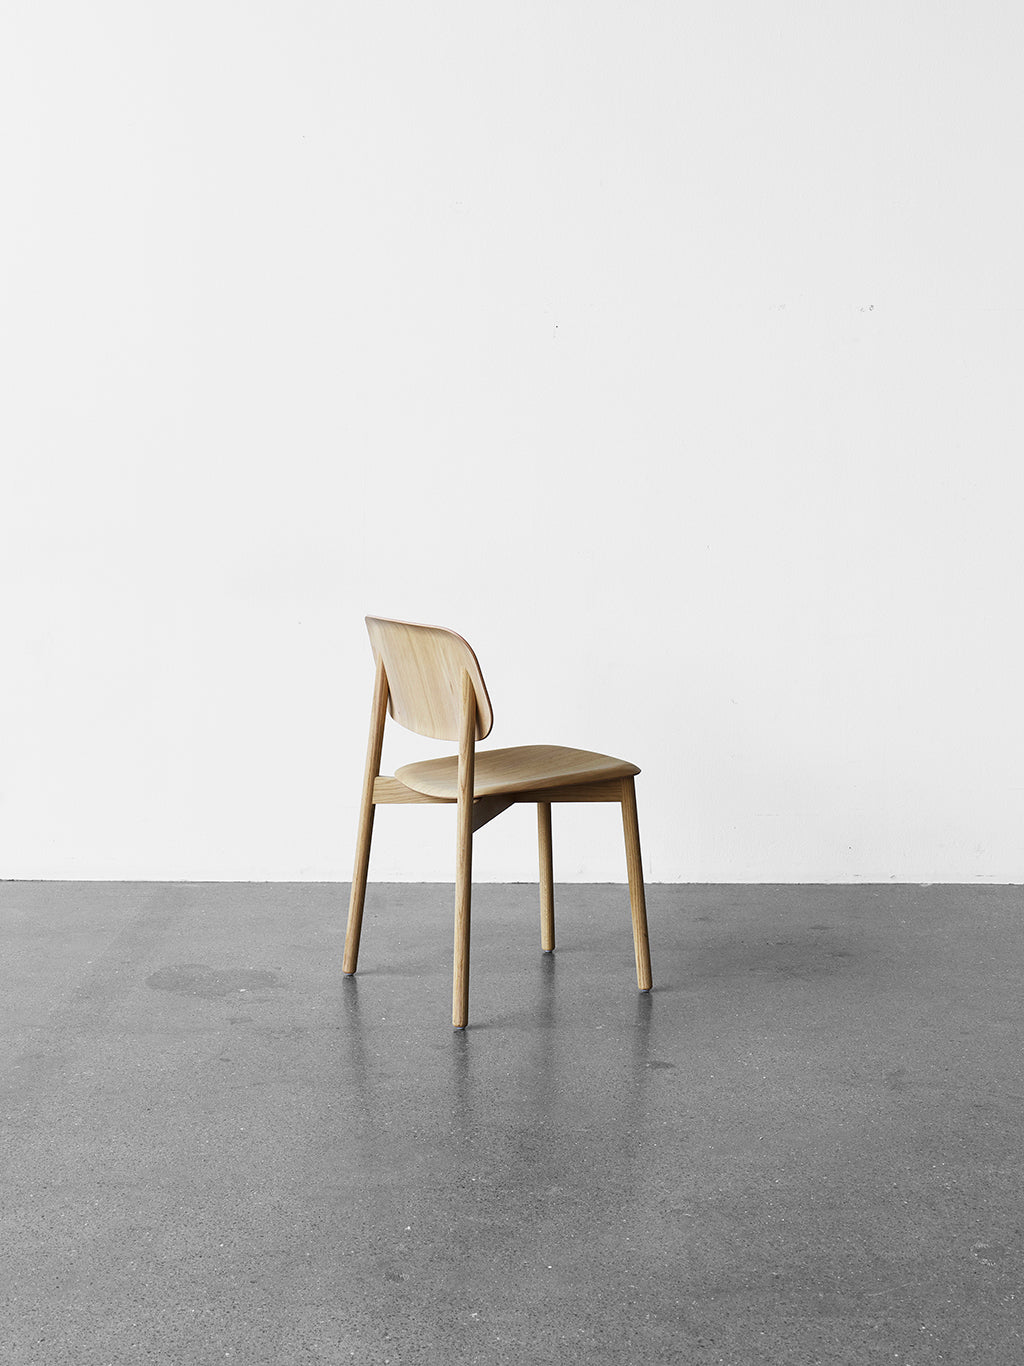 The Soft Edge Chair by Iskos-Berlin for Hay